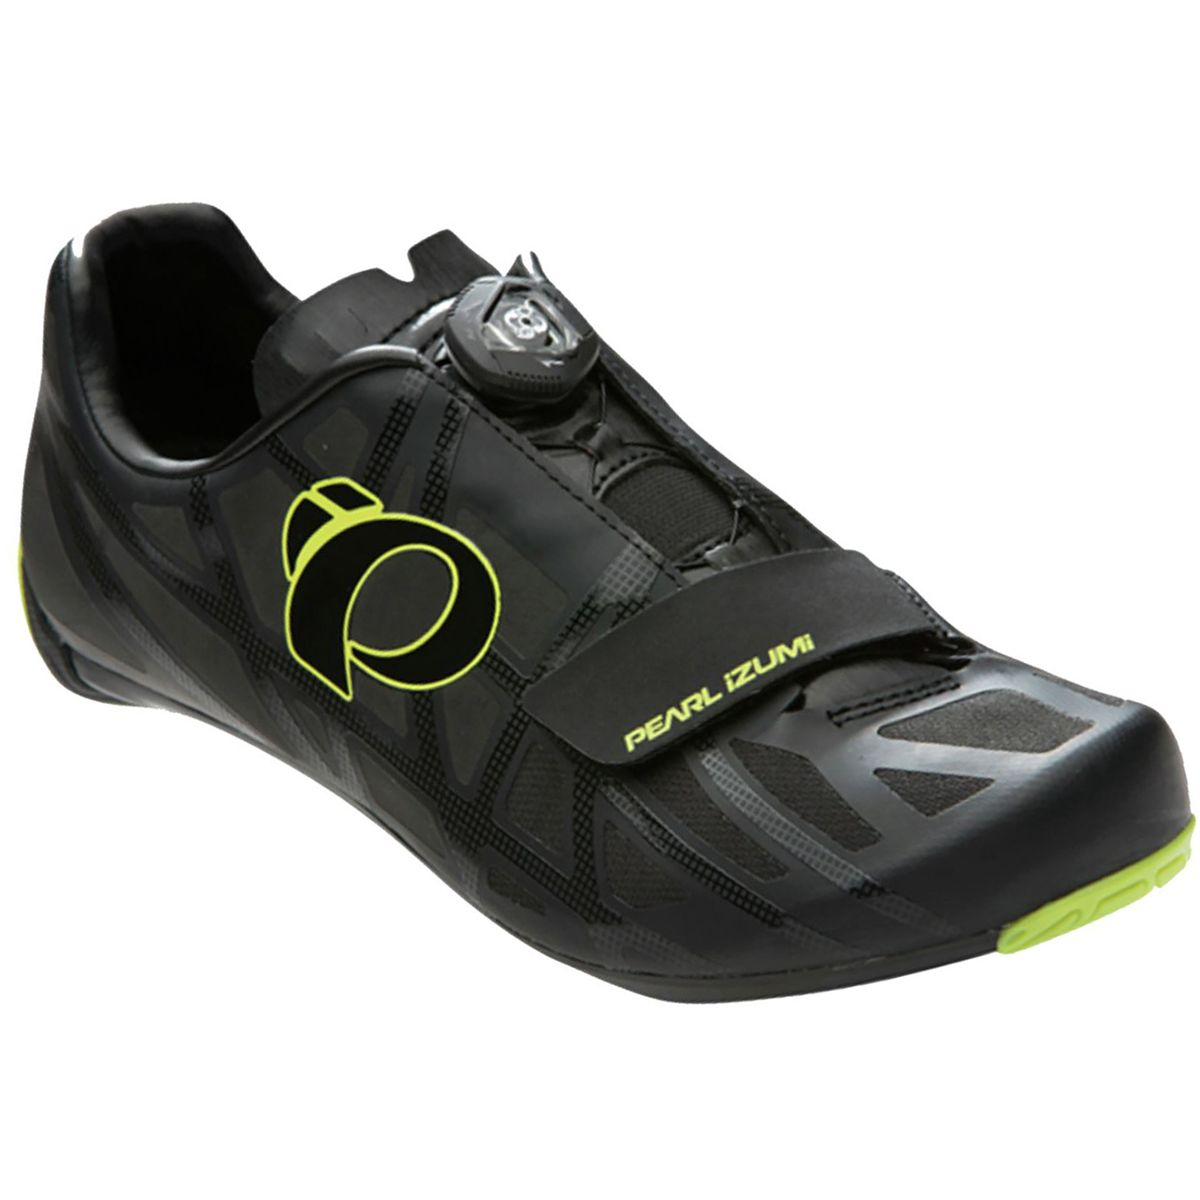 Mens Touring Cycling Shoes